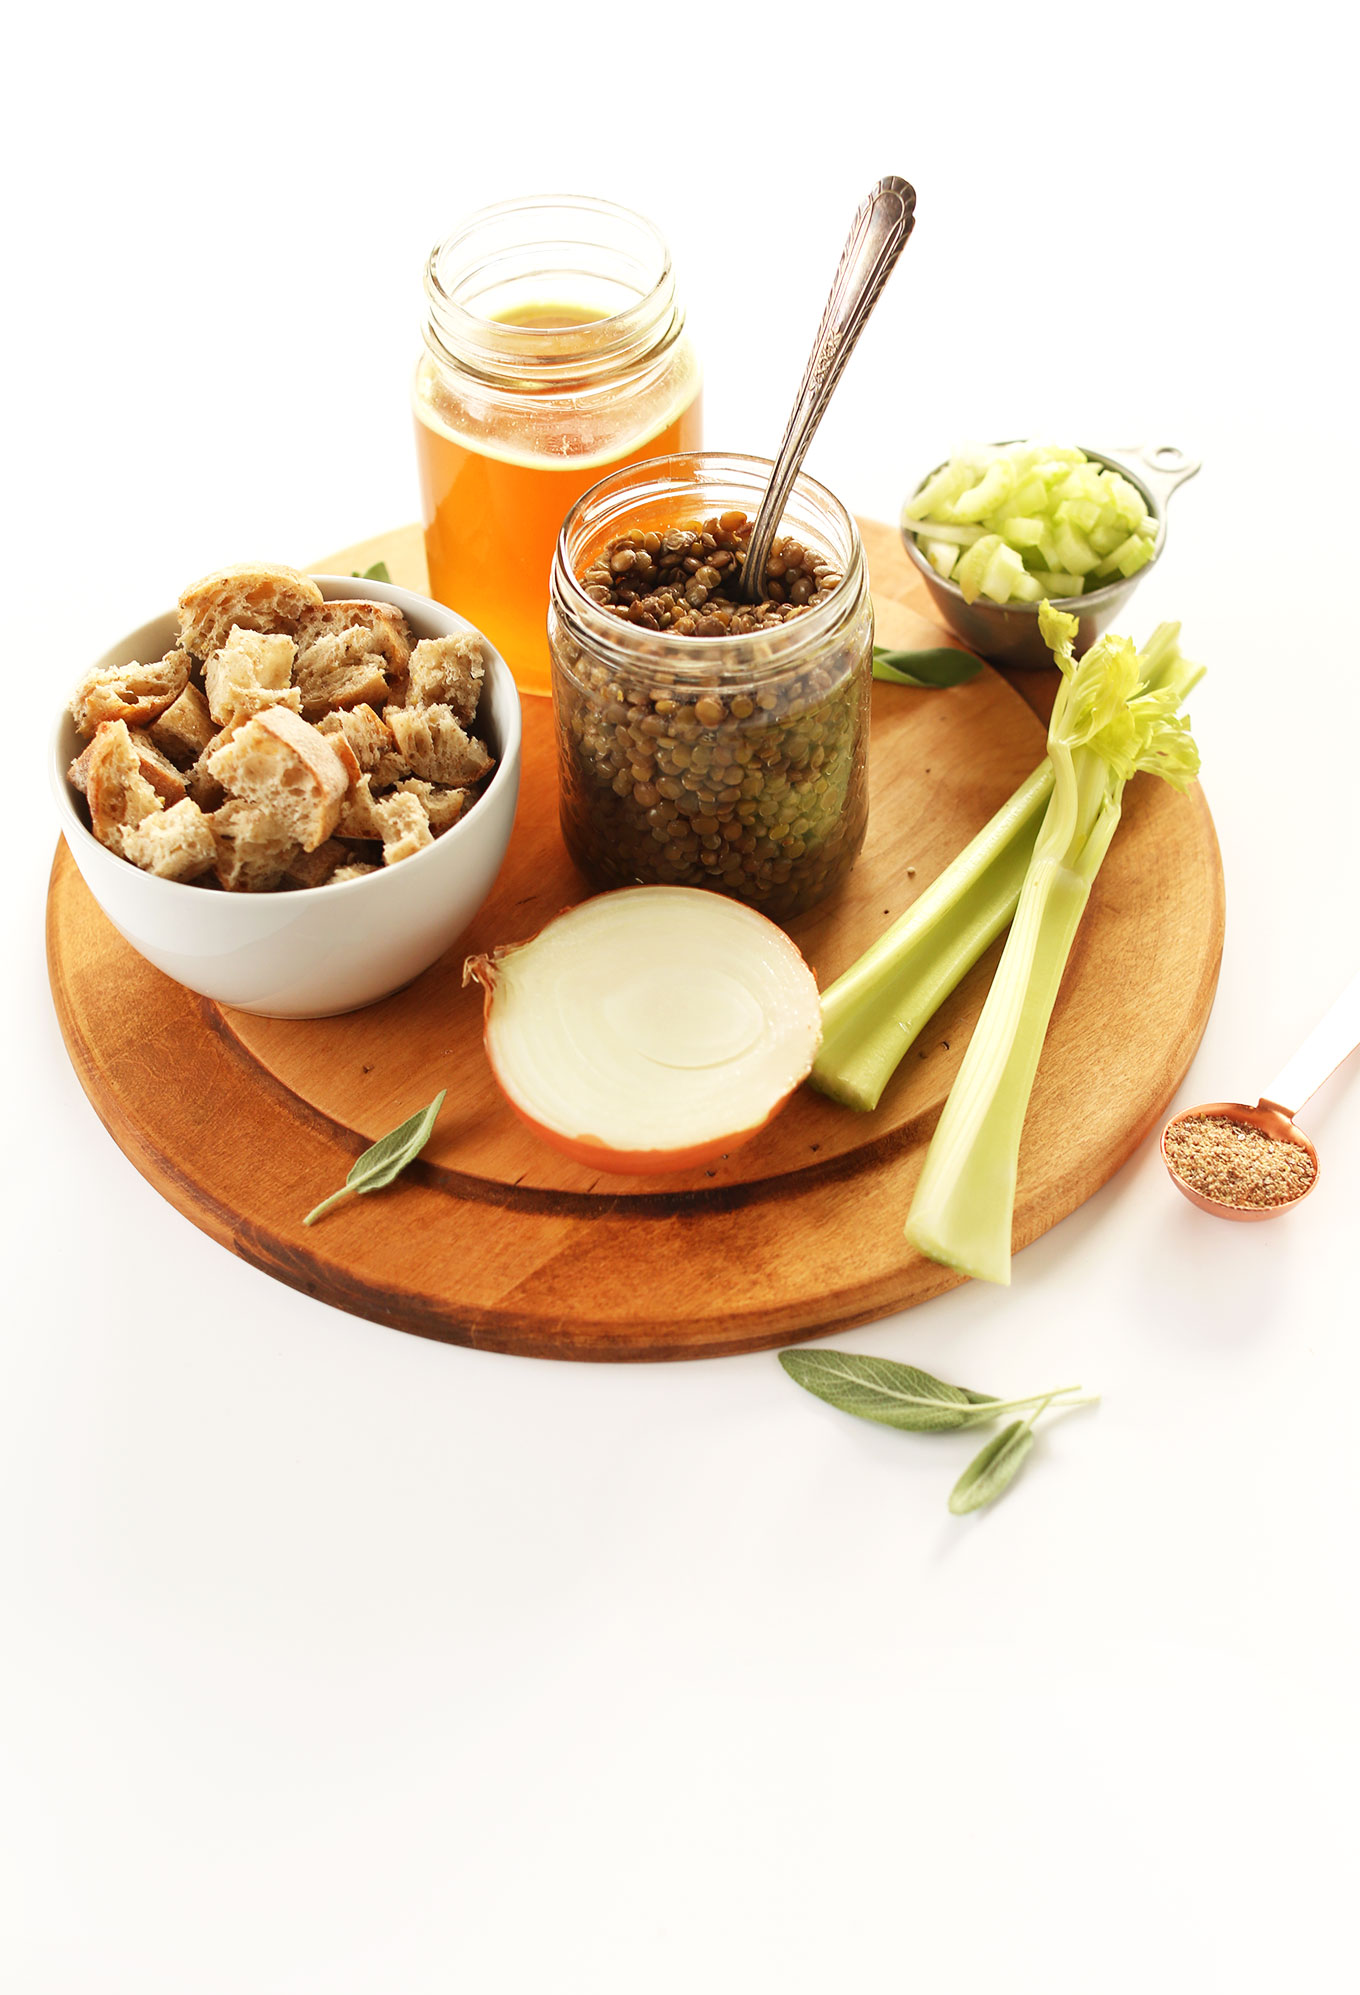 Cutting board with celery, onion, lentils, bread, and broth for making homemade vegan stuffing